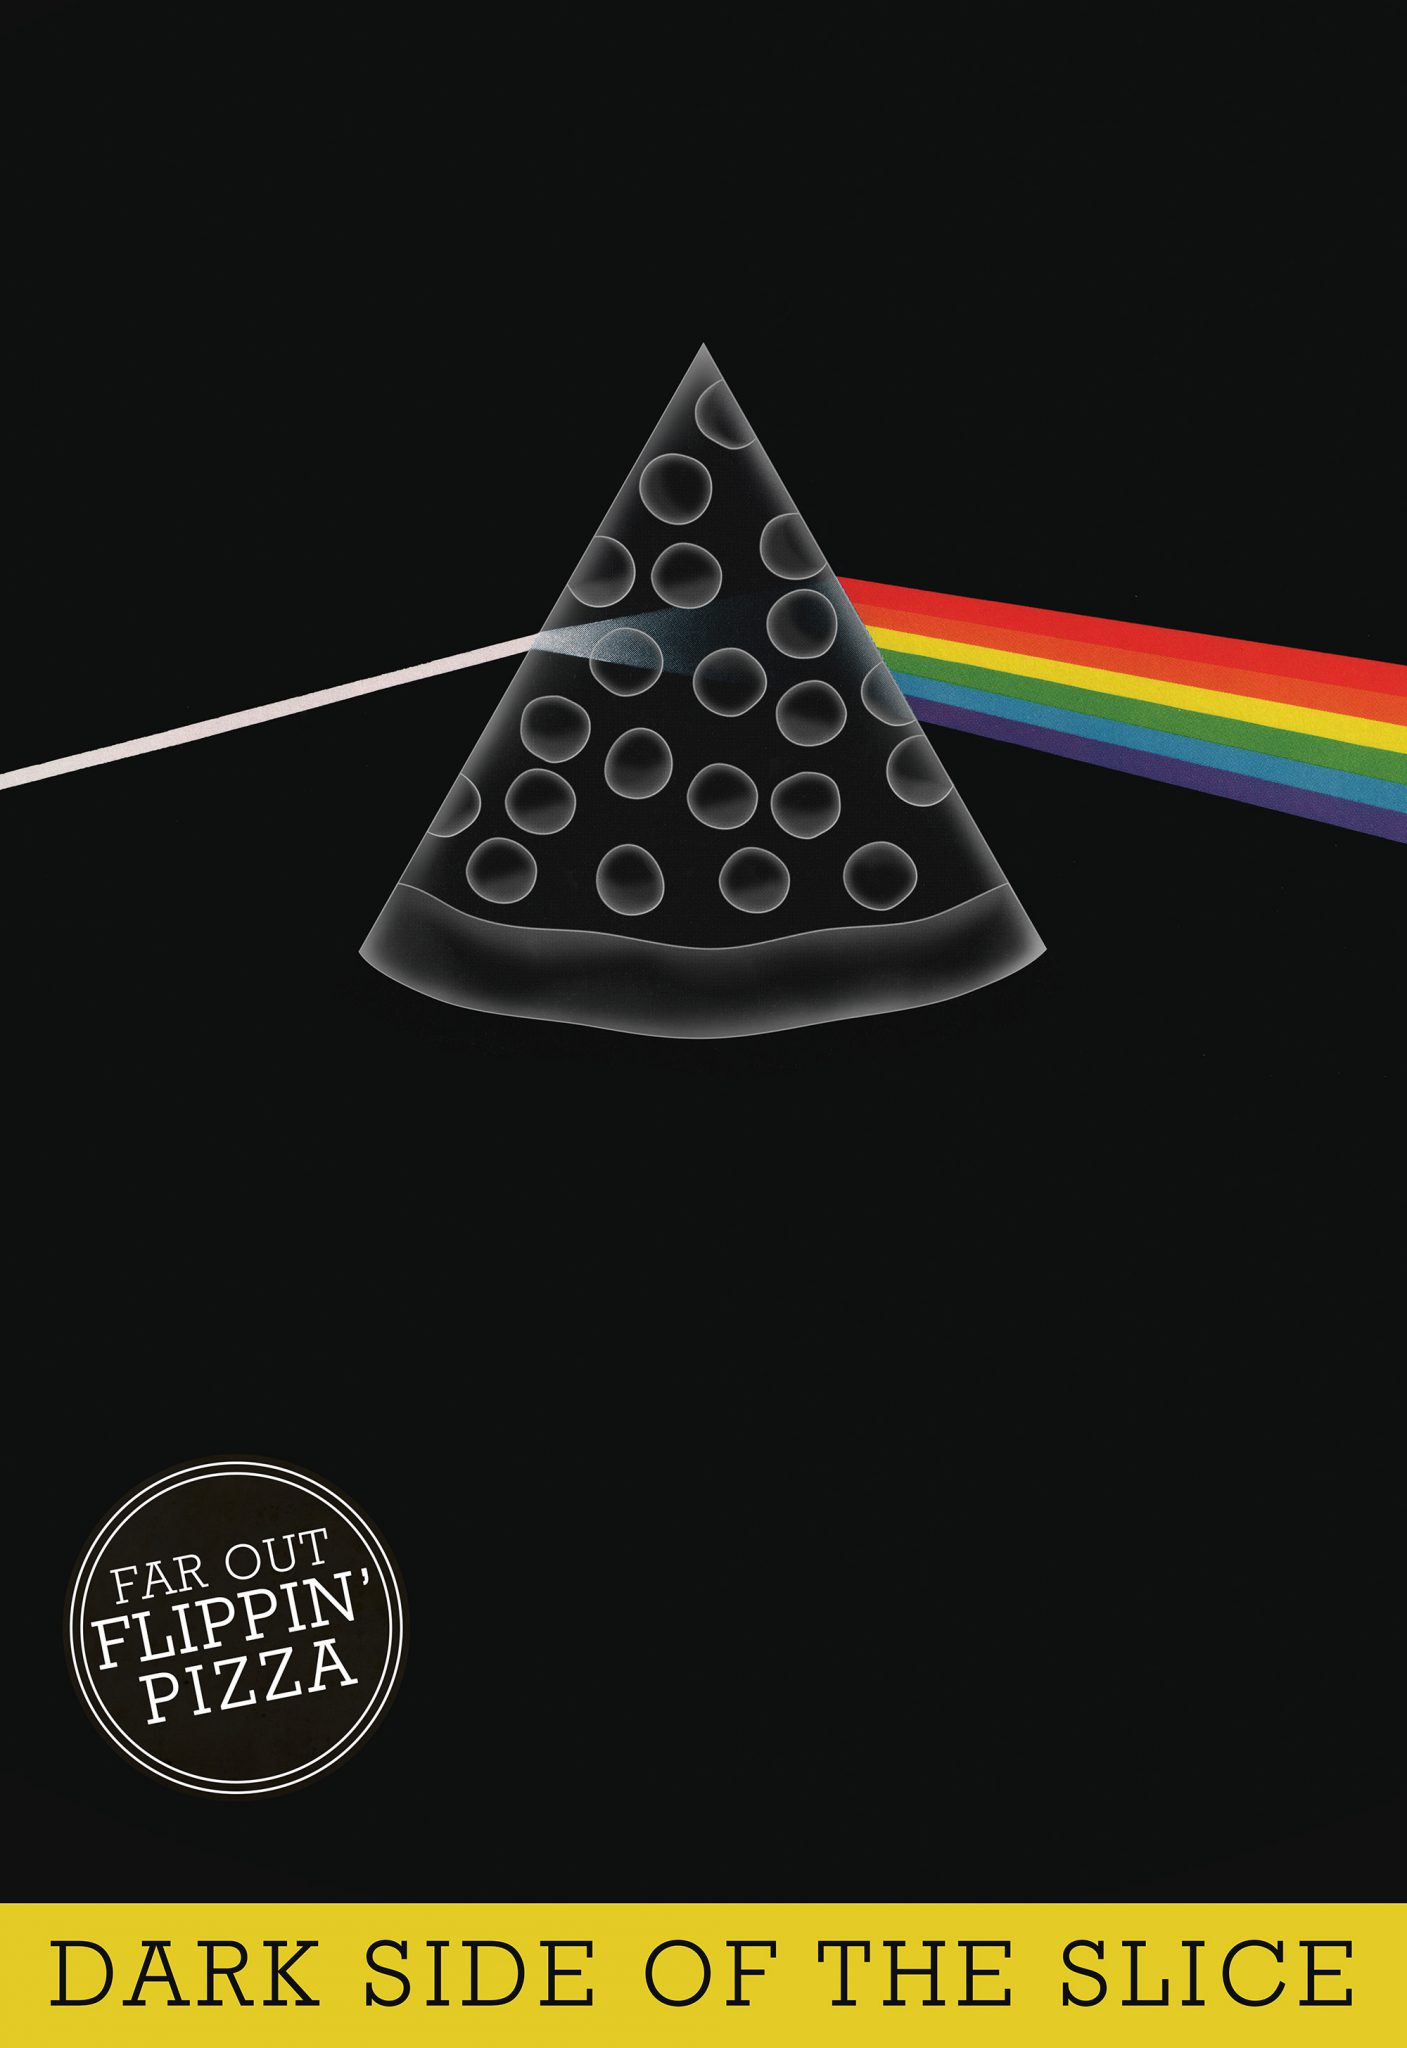 Flippin' Pizza Dark Side of the Slice